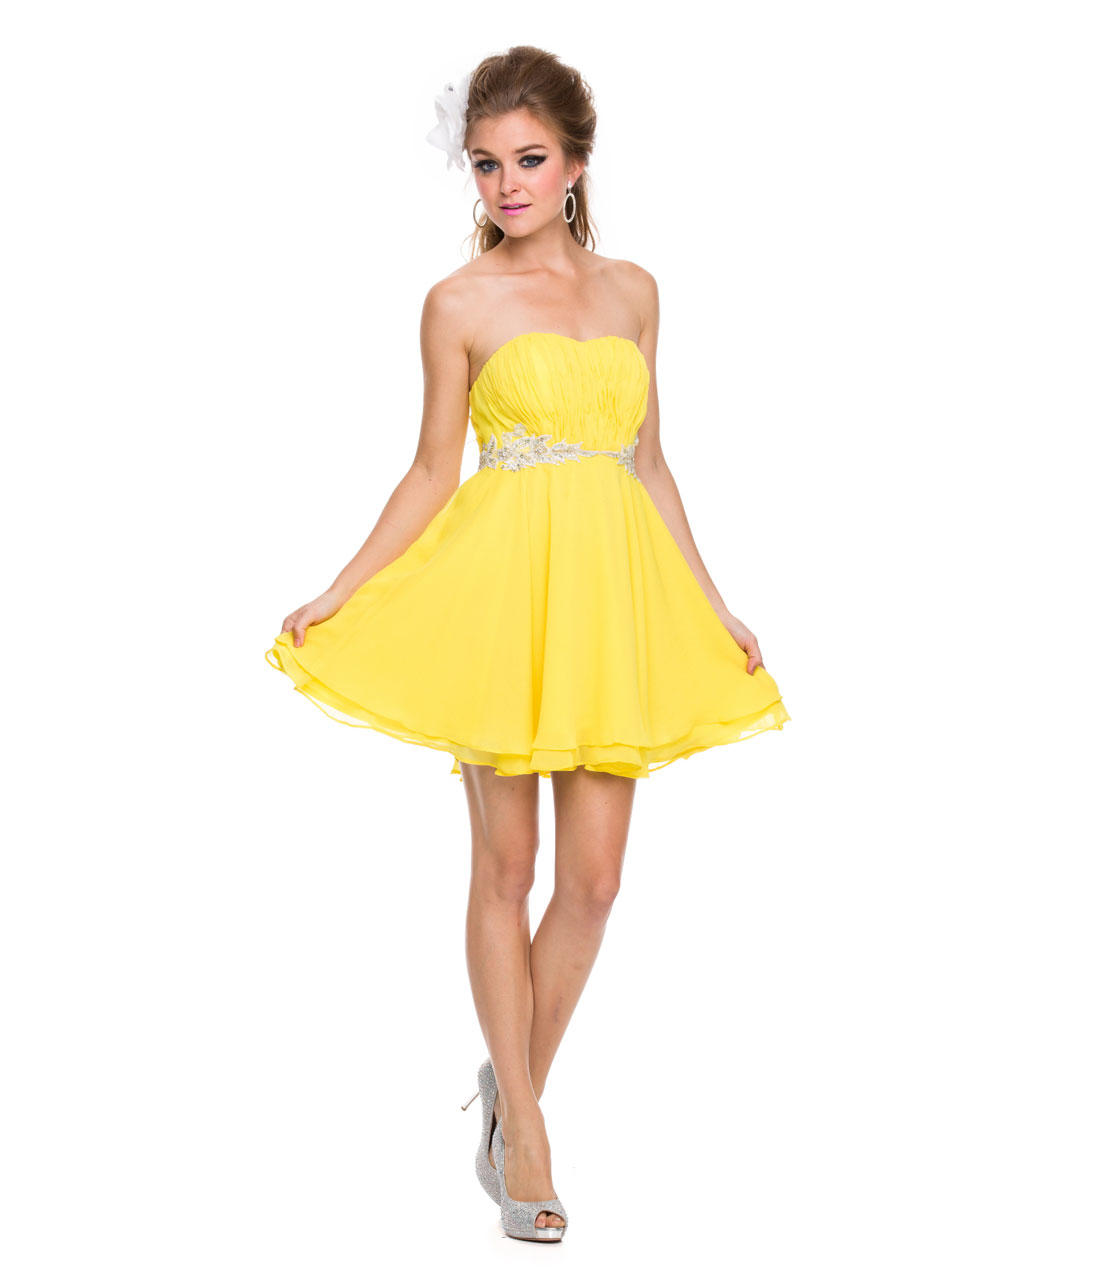 Yellow chiffon strapless short dress 2015 from unique vintage